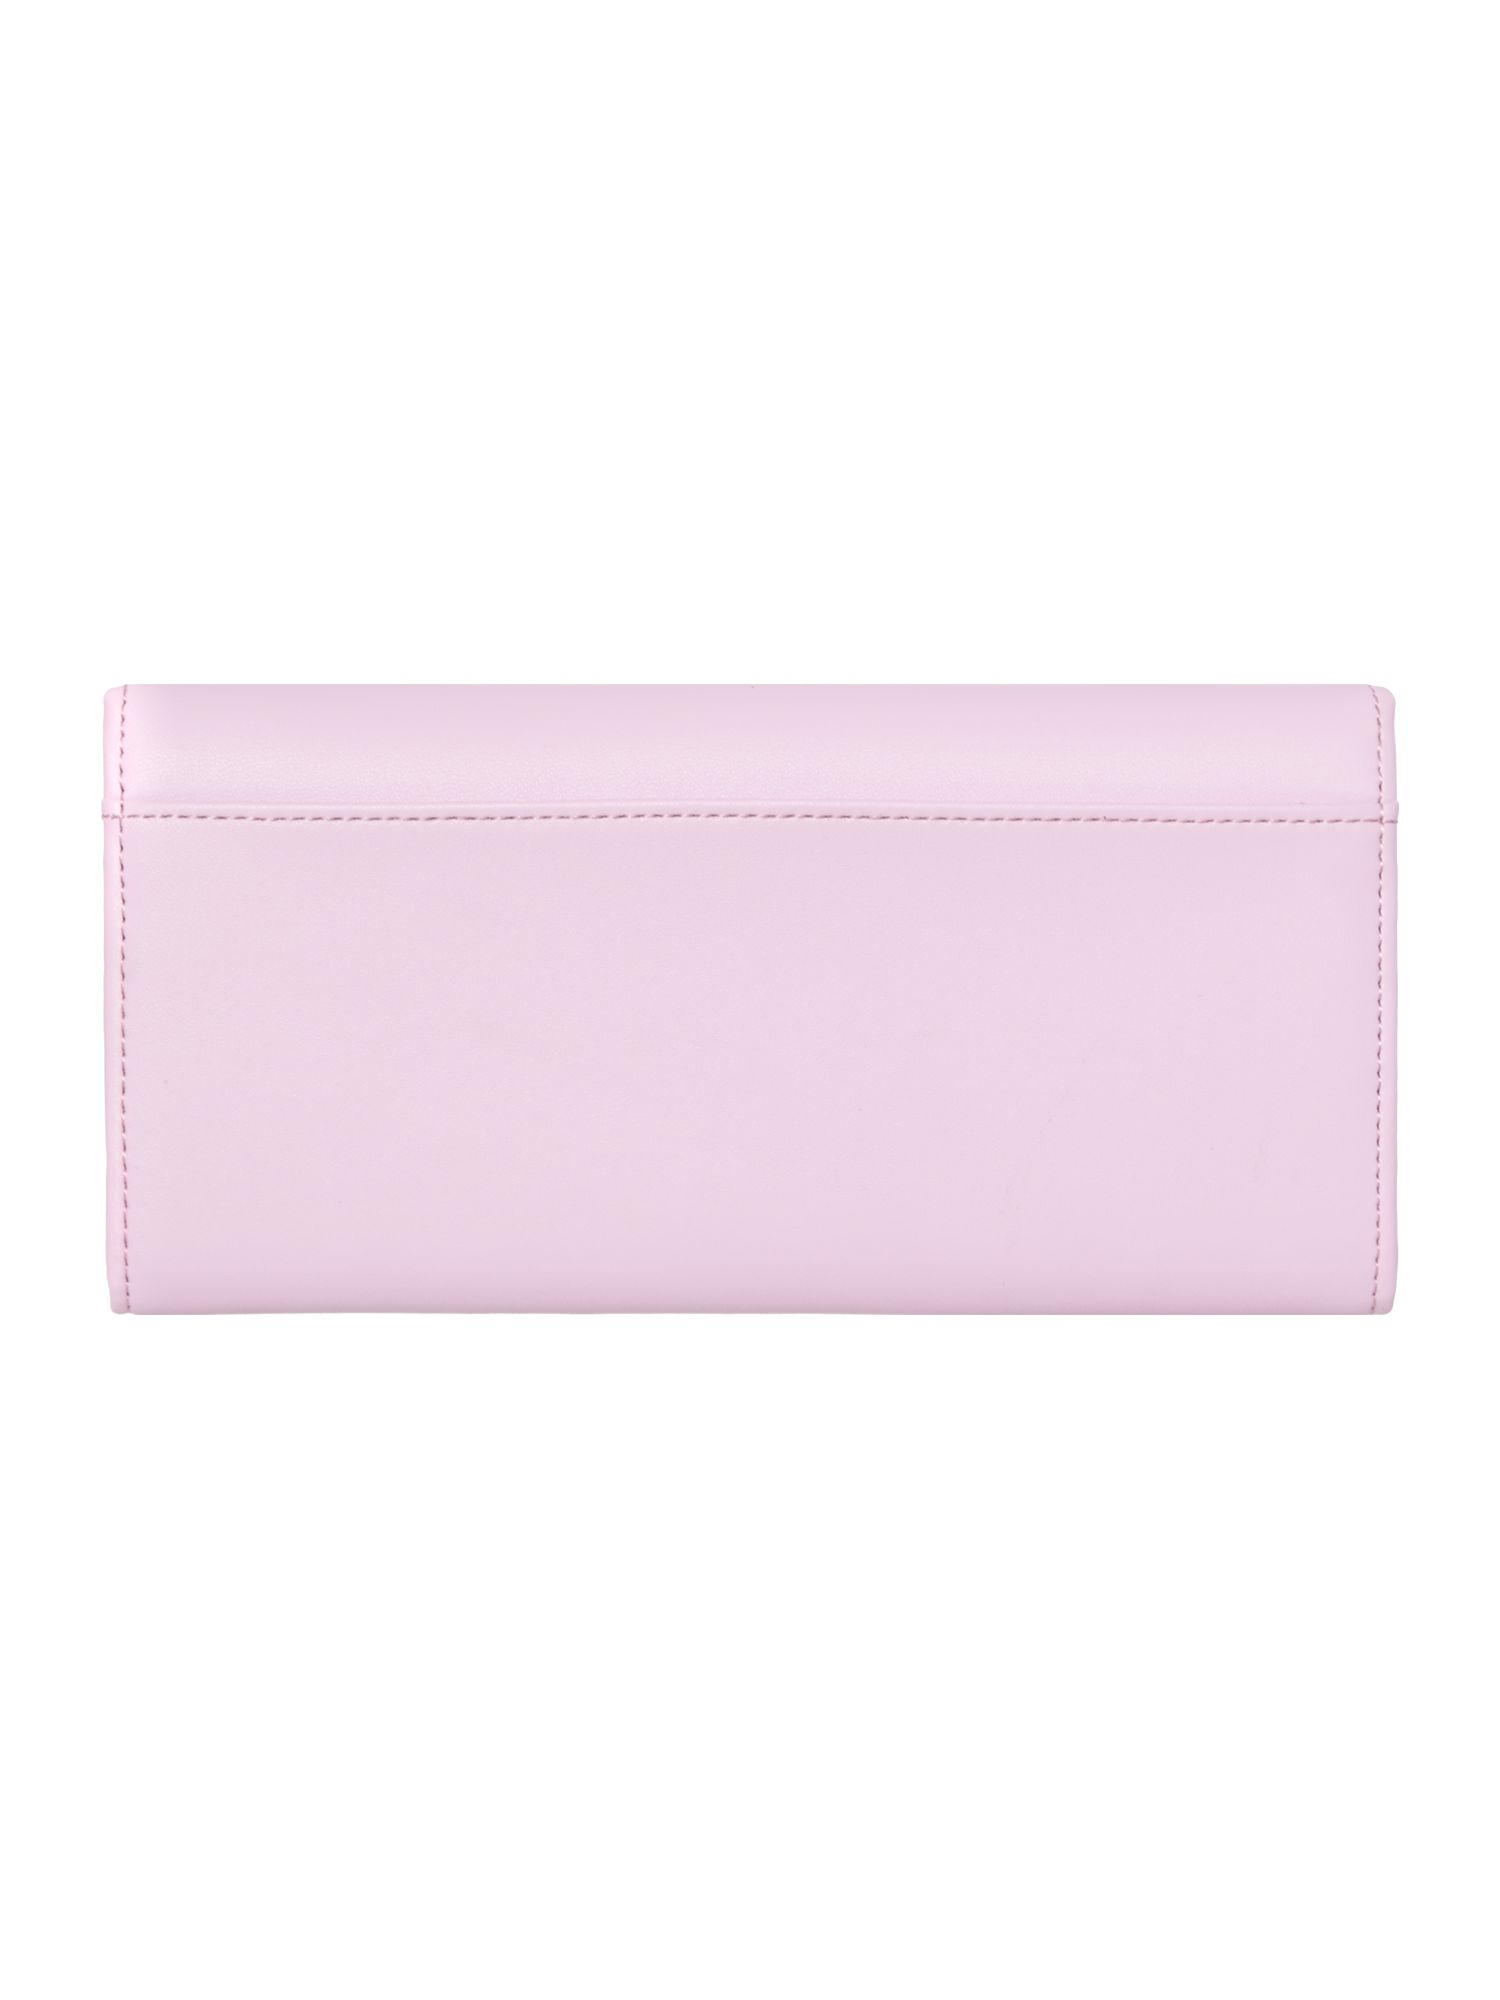 Pale pink metal bar matinee flapover purse